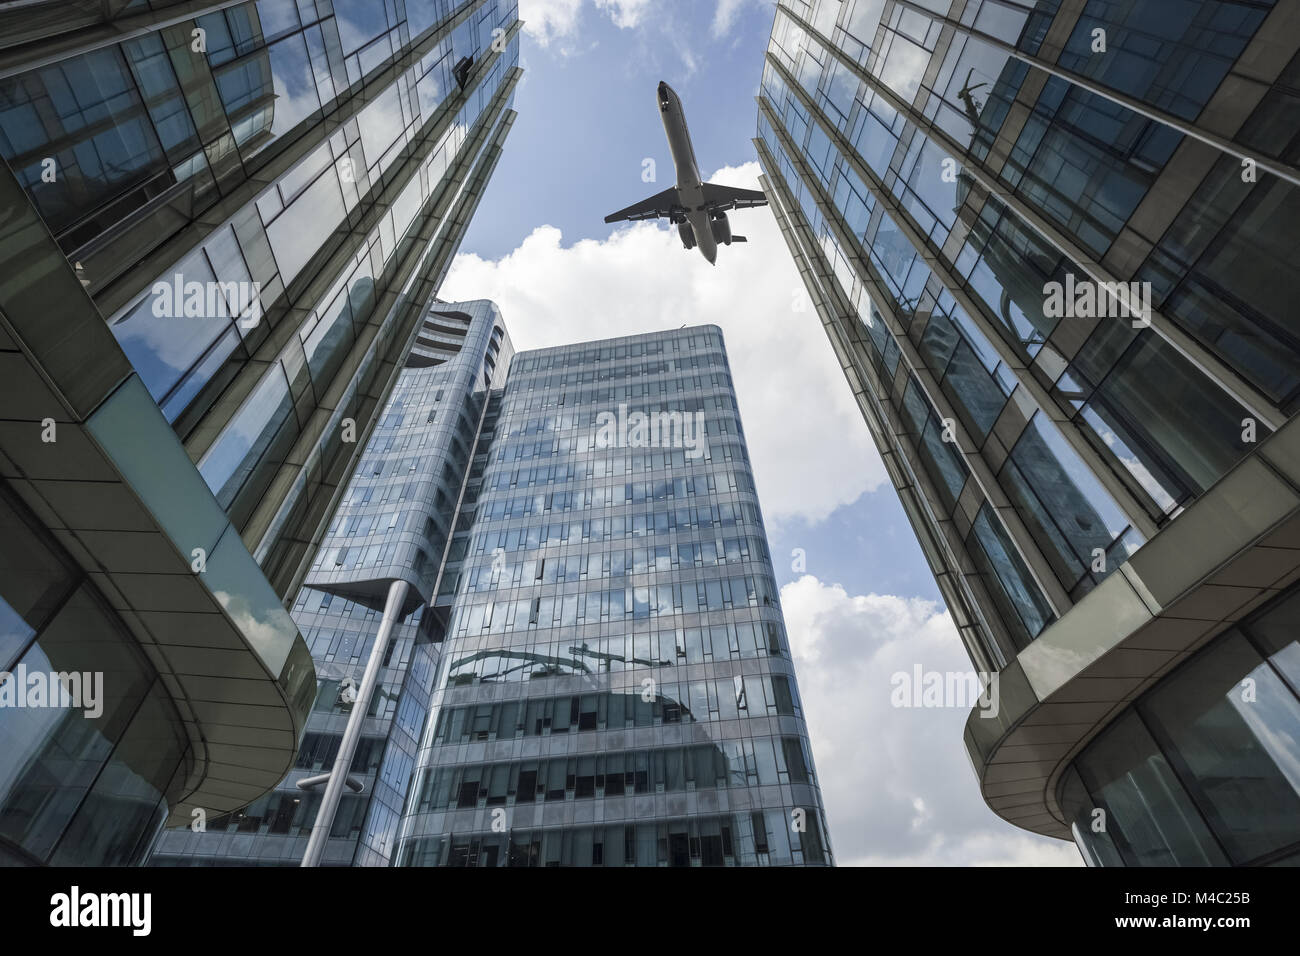 airliner flew above the modern glass building - Stock Image